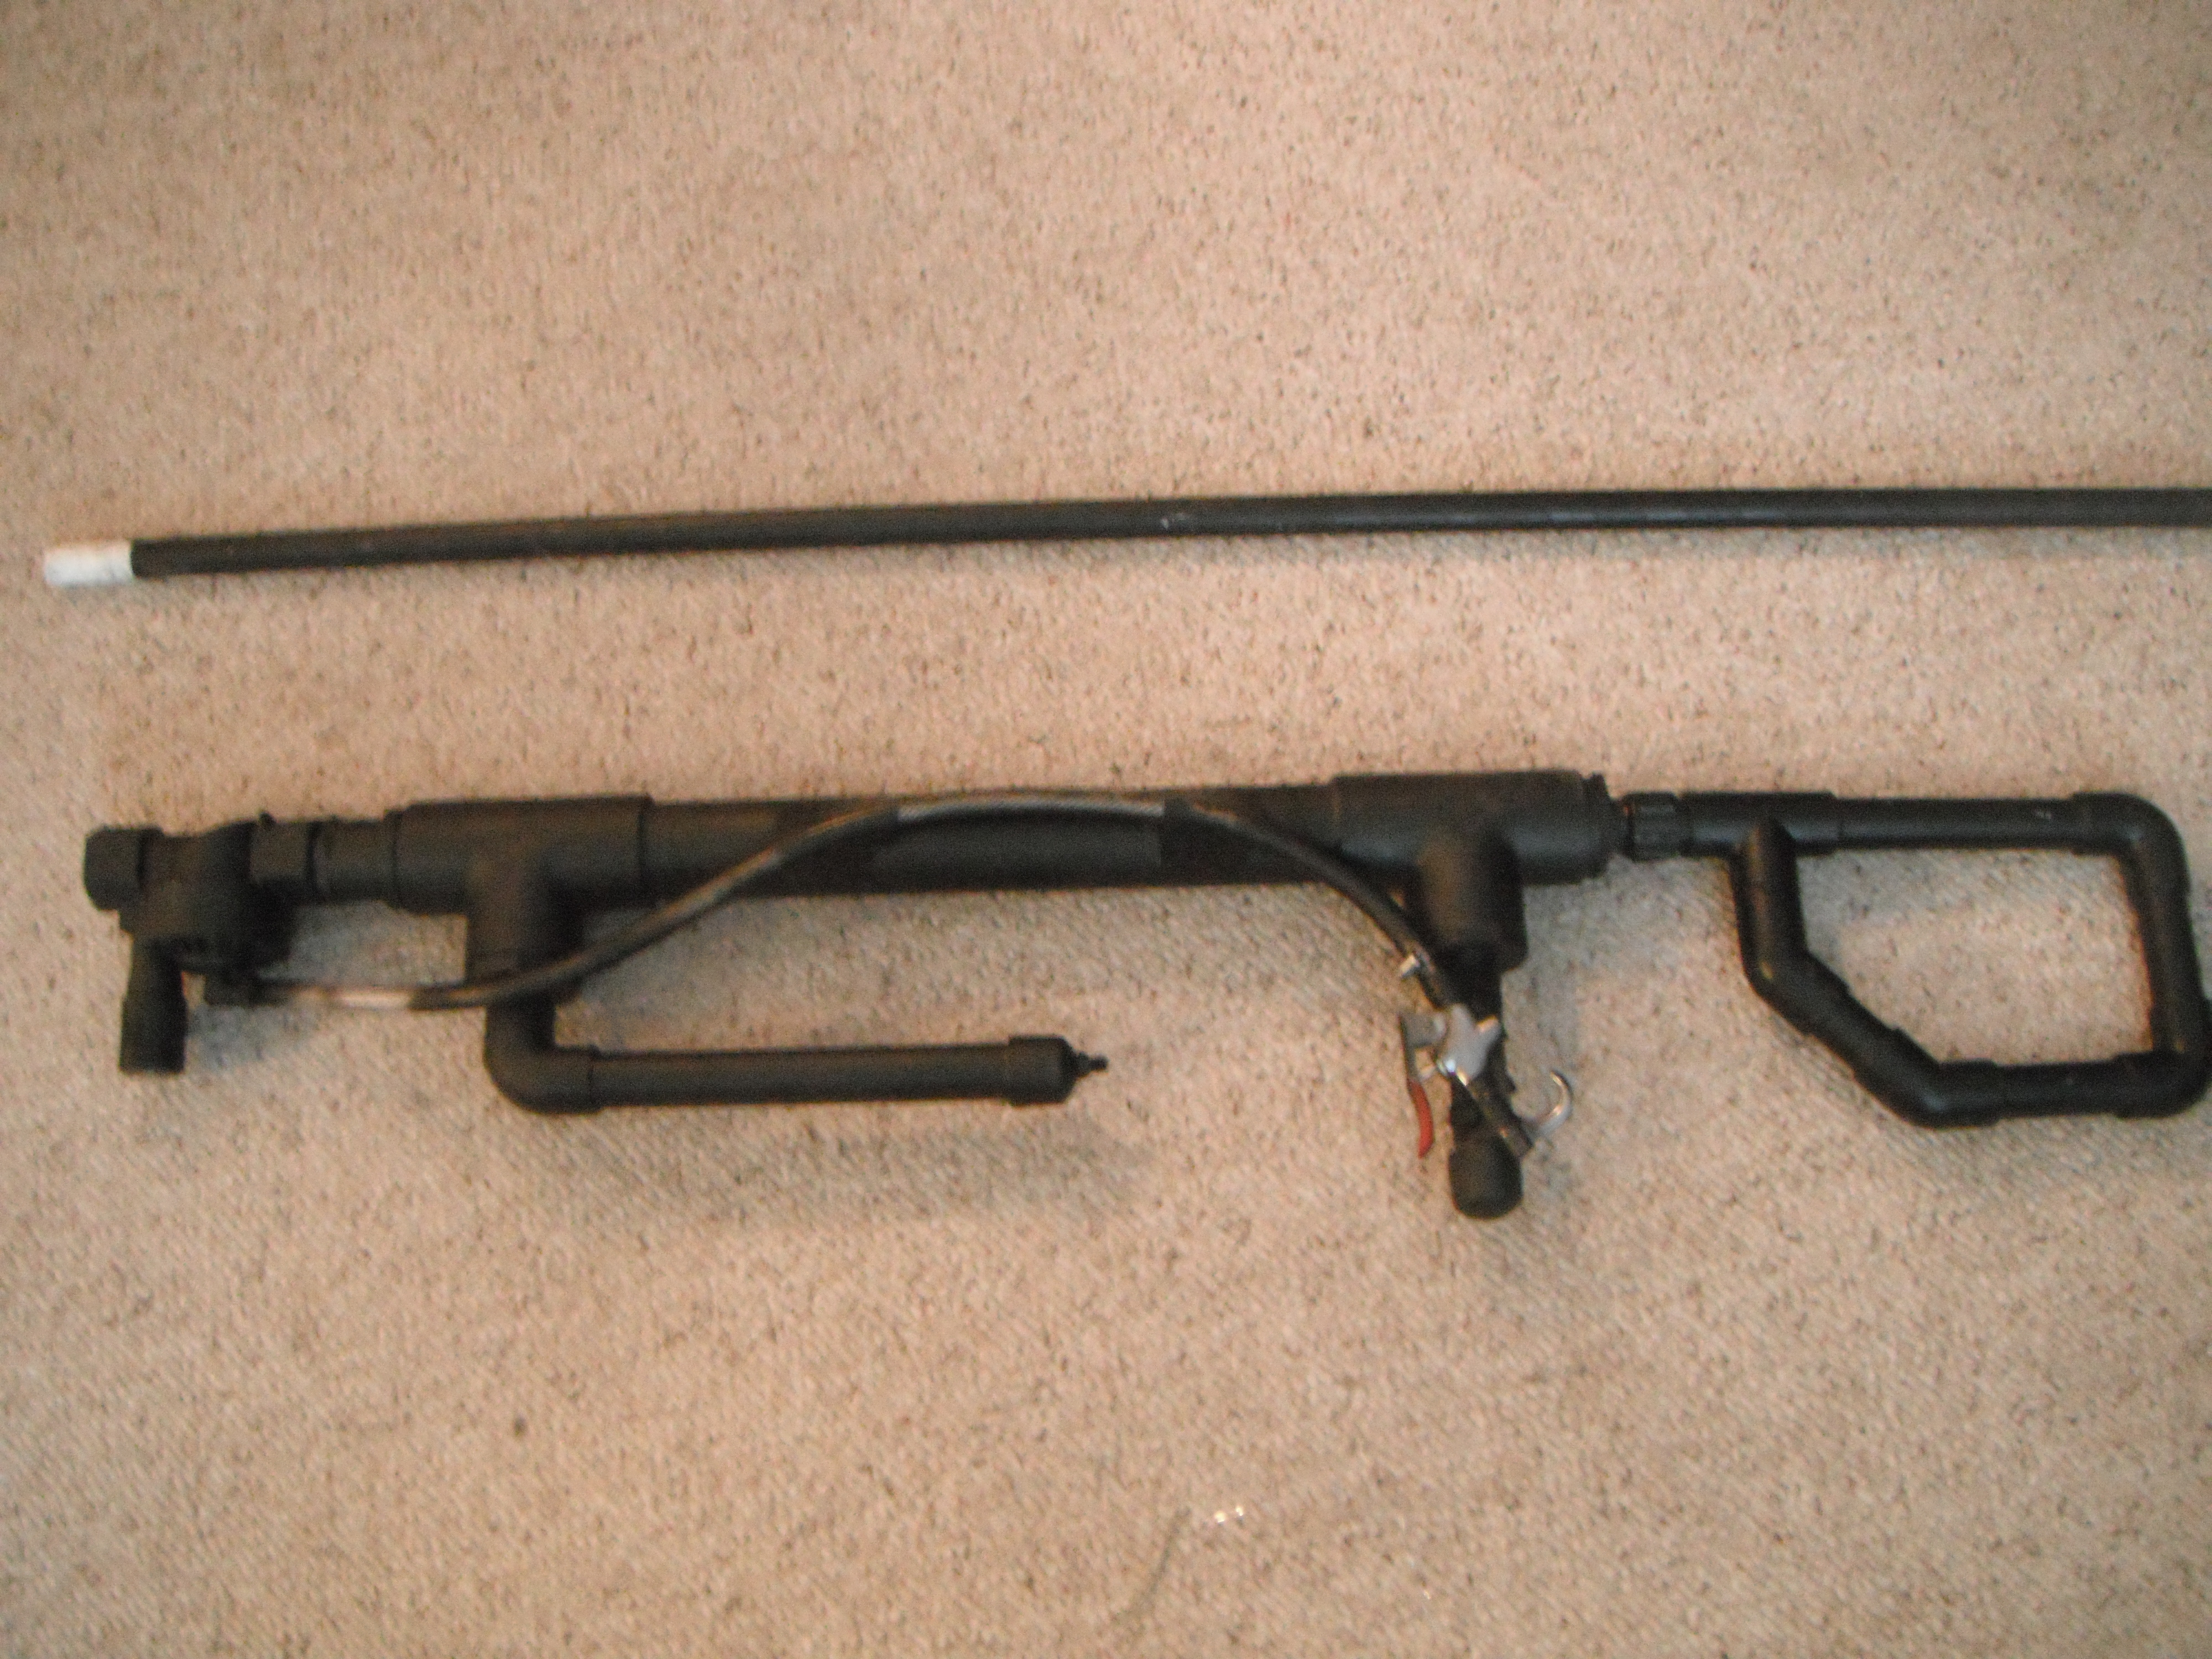 Picture of Intermidate Air Rifle With Interchangable Stock